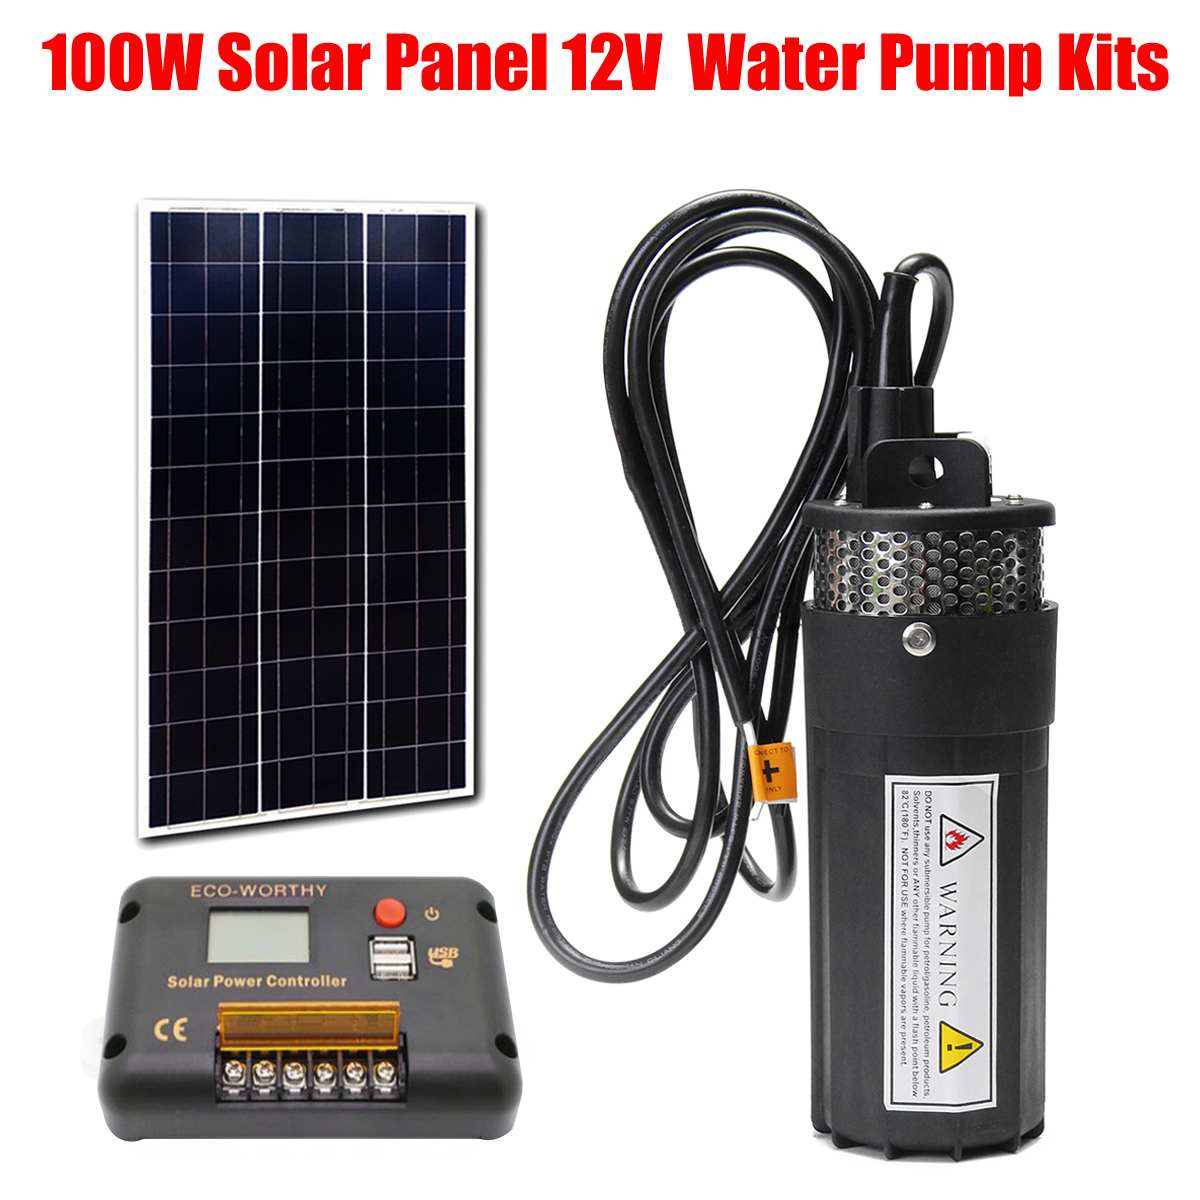 WOLIKE 100W Solar Panel With 12V Deep Well Water Pump + 15A Solar Power Controller Submersible Pump System